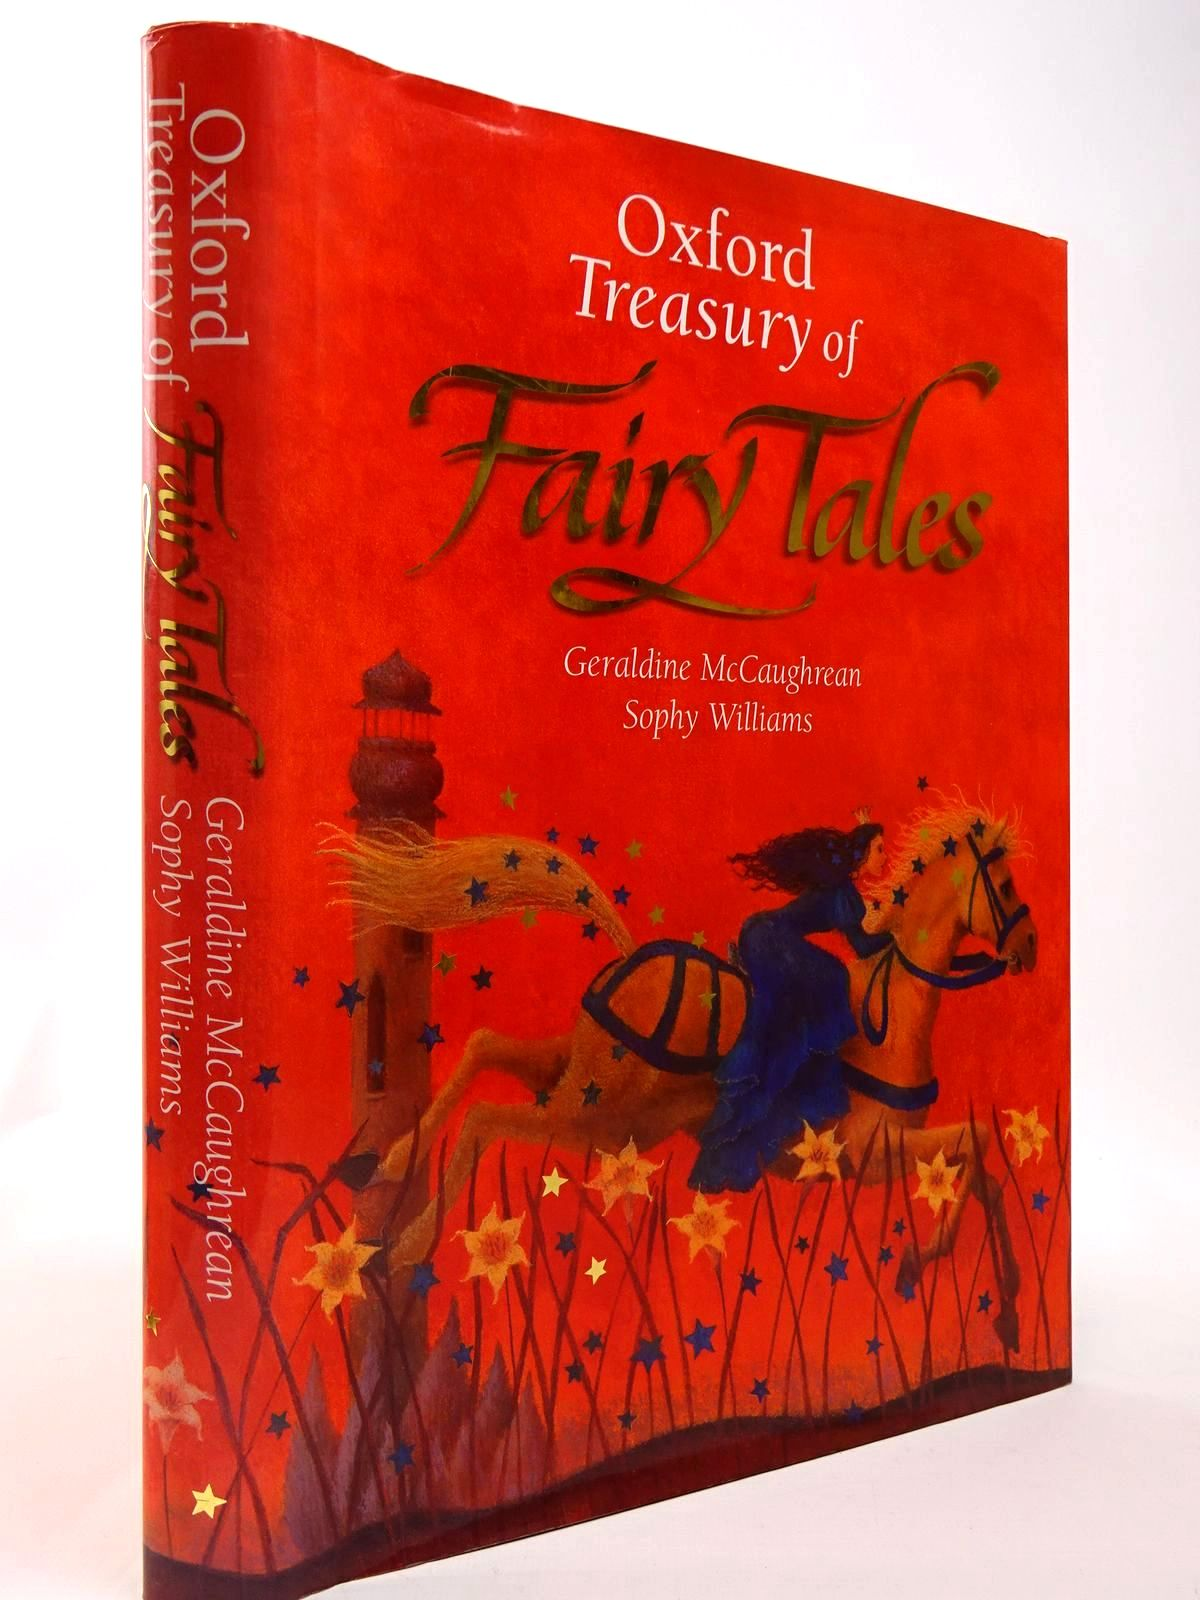 Photo of OXFORD TREASURY OF FAIRY TALES written by McCaughrean, Geraldine illustrated by Williams, Sophy published by Oxford University Press (STOCK CODE: 2129830)  for sale by Stella & Rose's Books